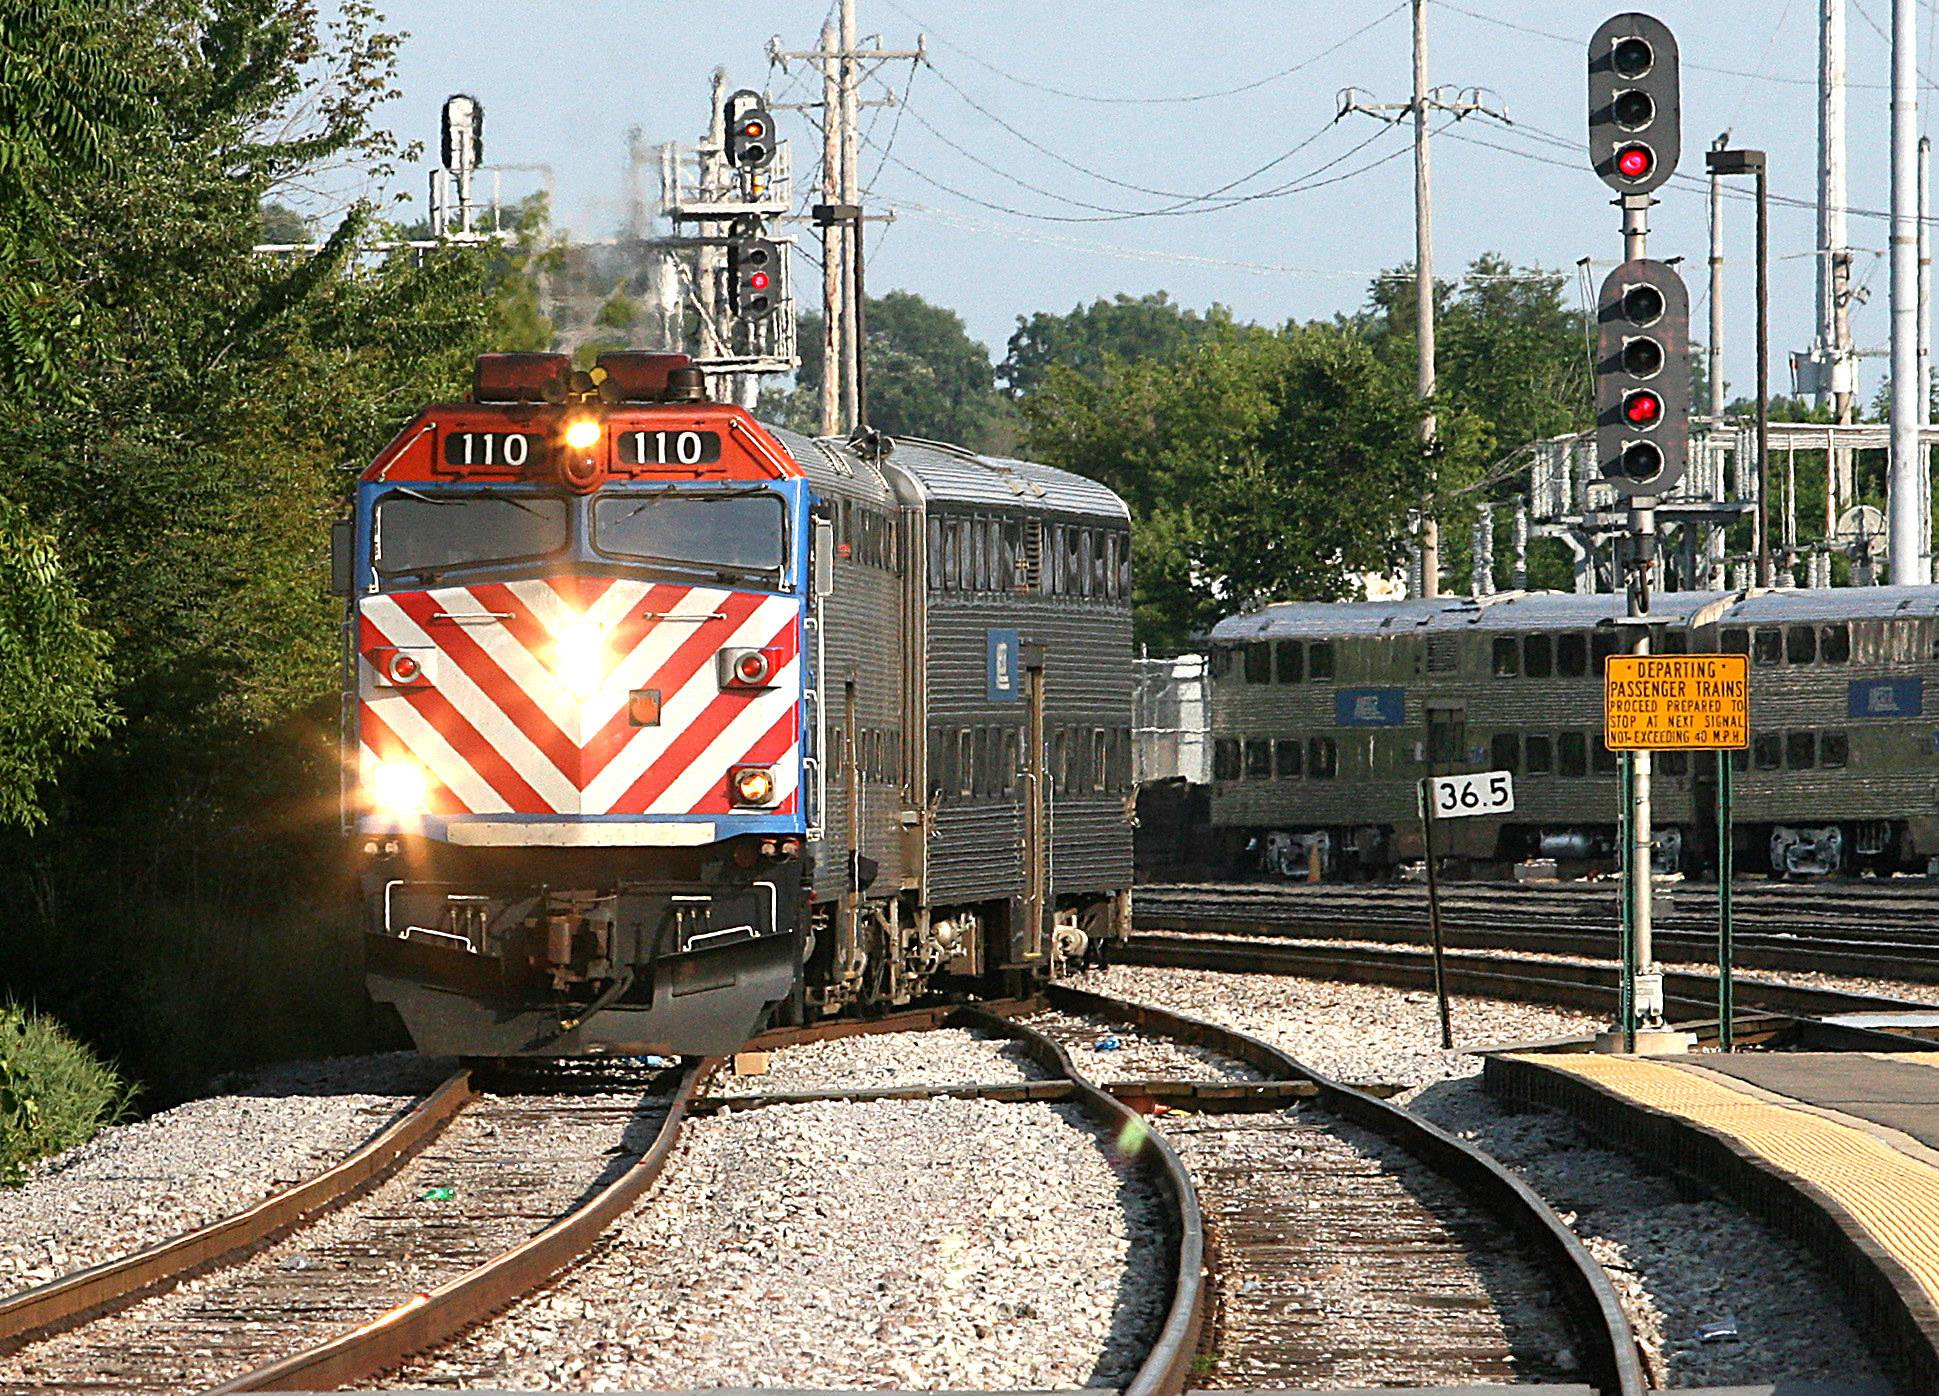 Metra commuters could see reduced service on some routes in 2018 as a result of the agency's proposed doomsday budget.